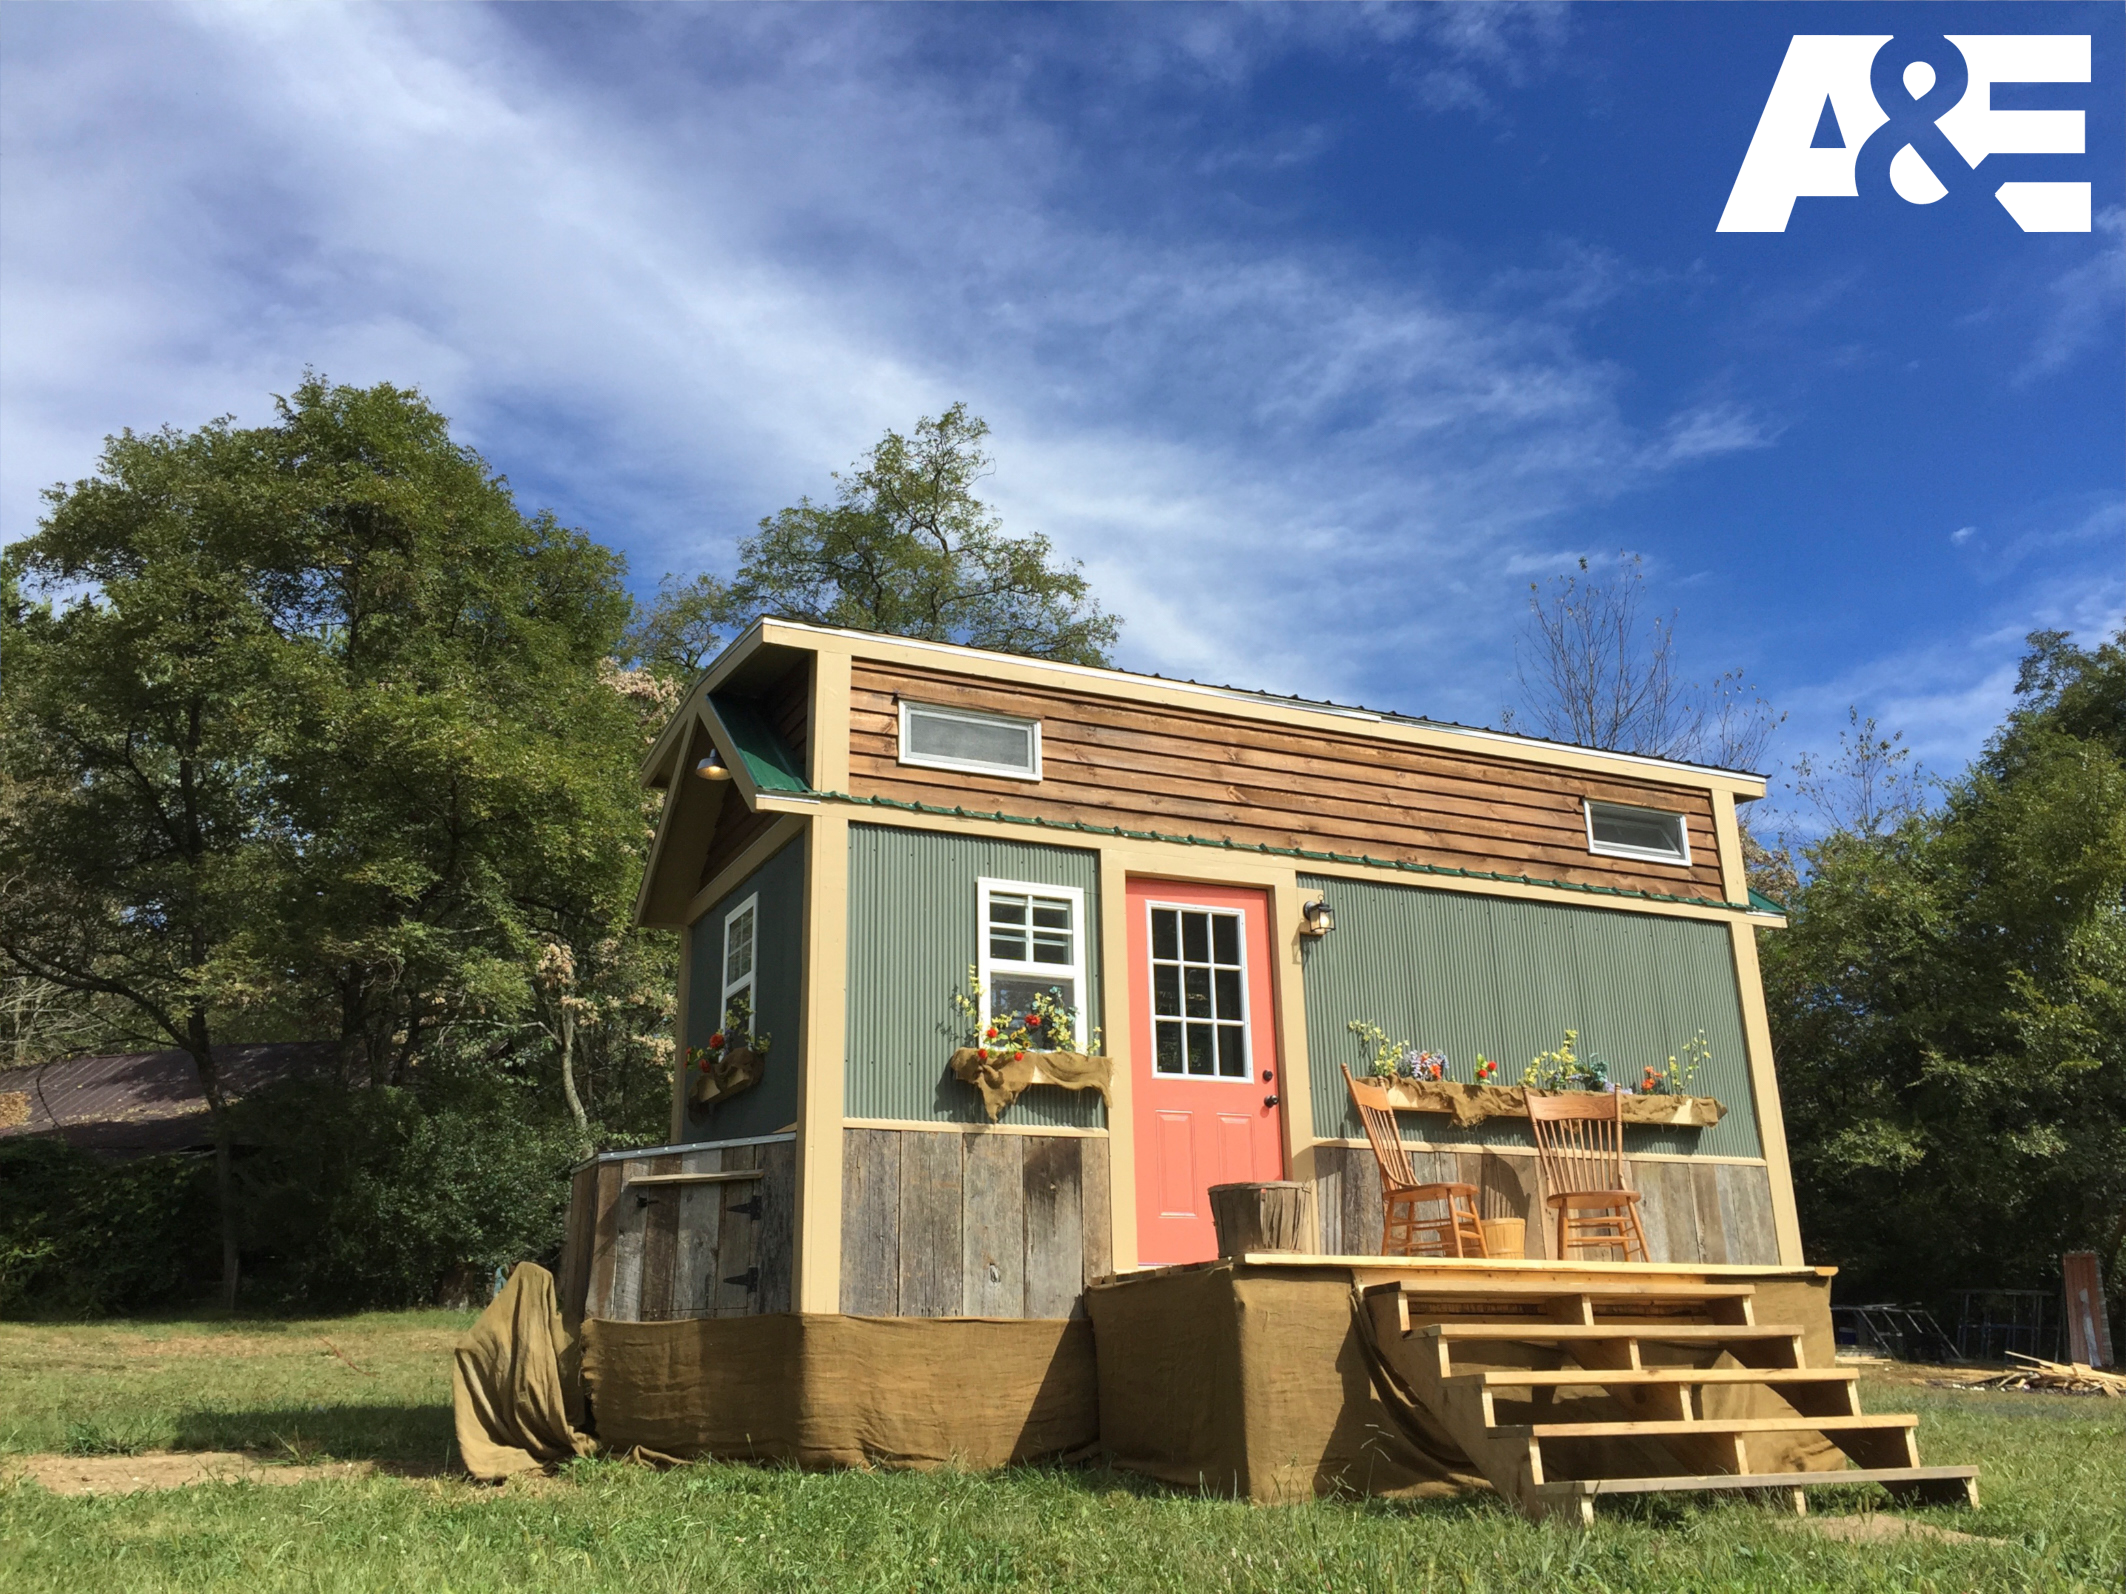 AE_Tiny_House_Hunters03_03Schmales_Budget737817